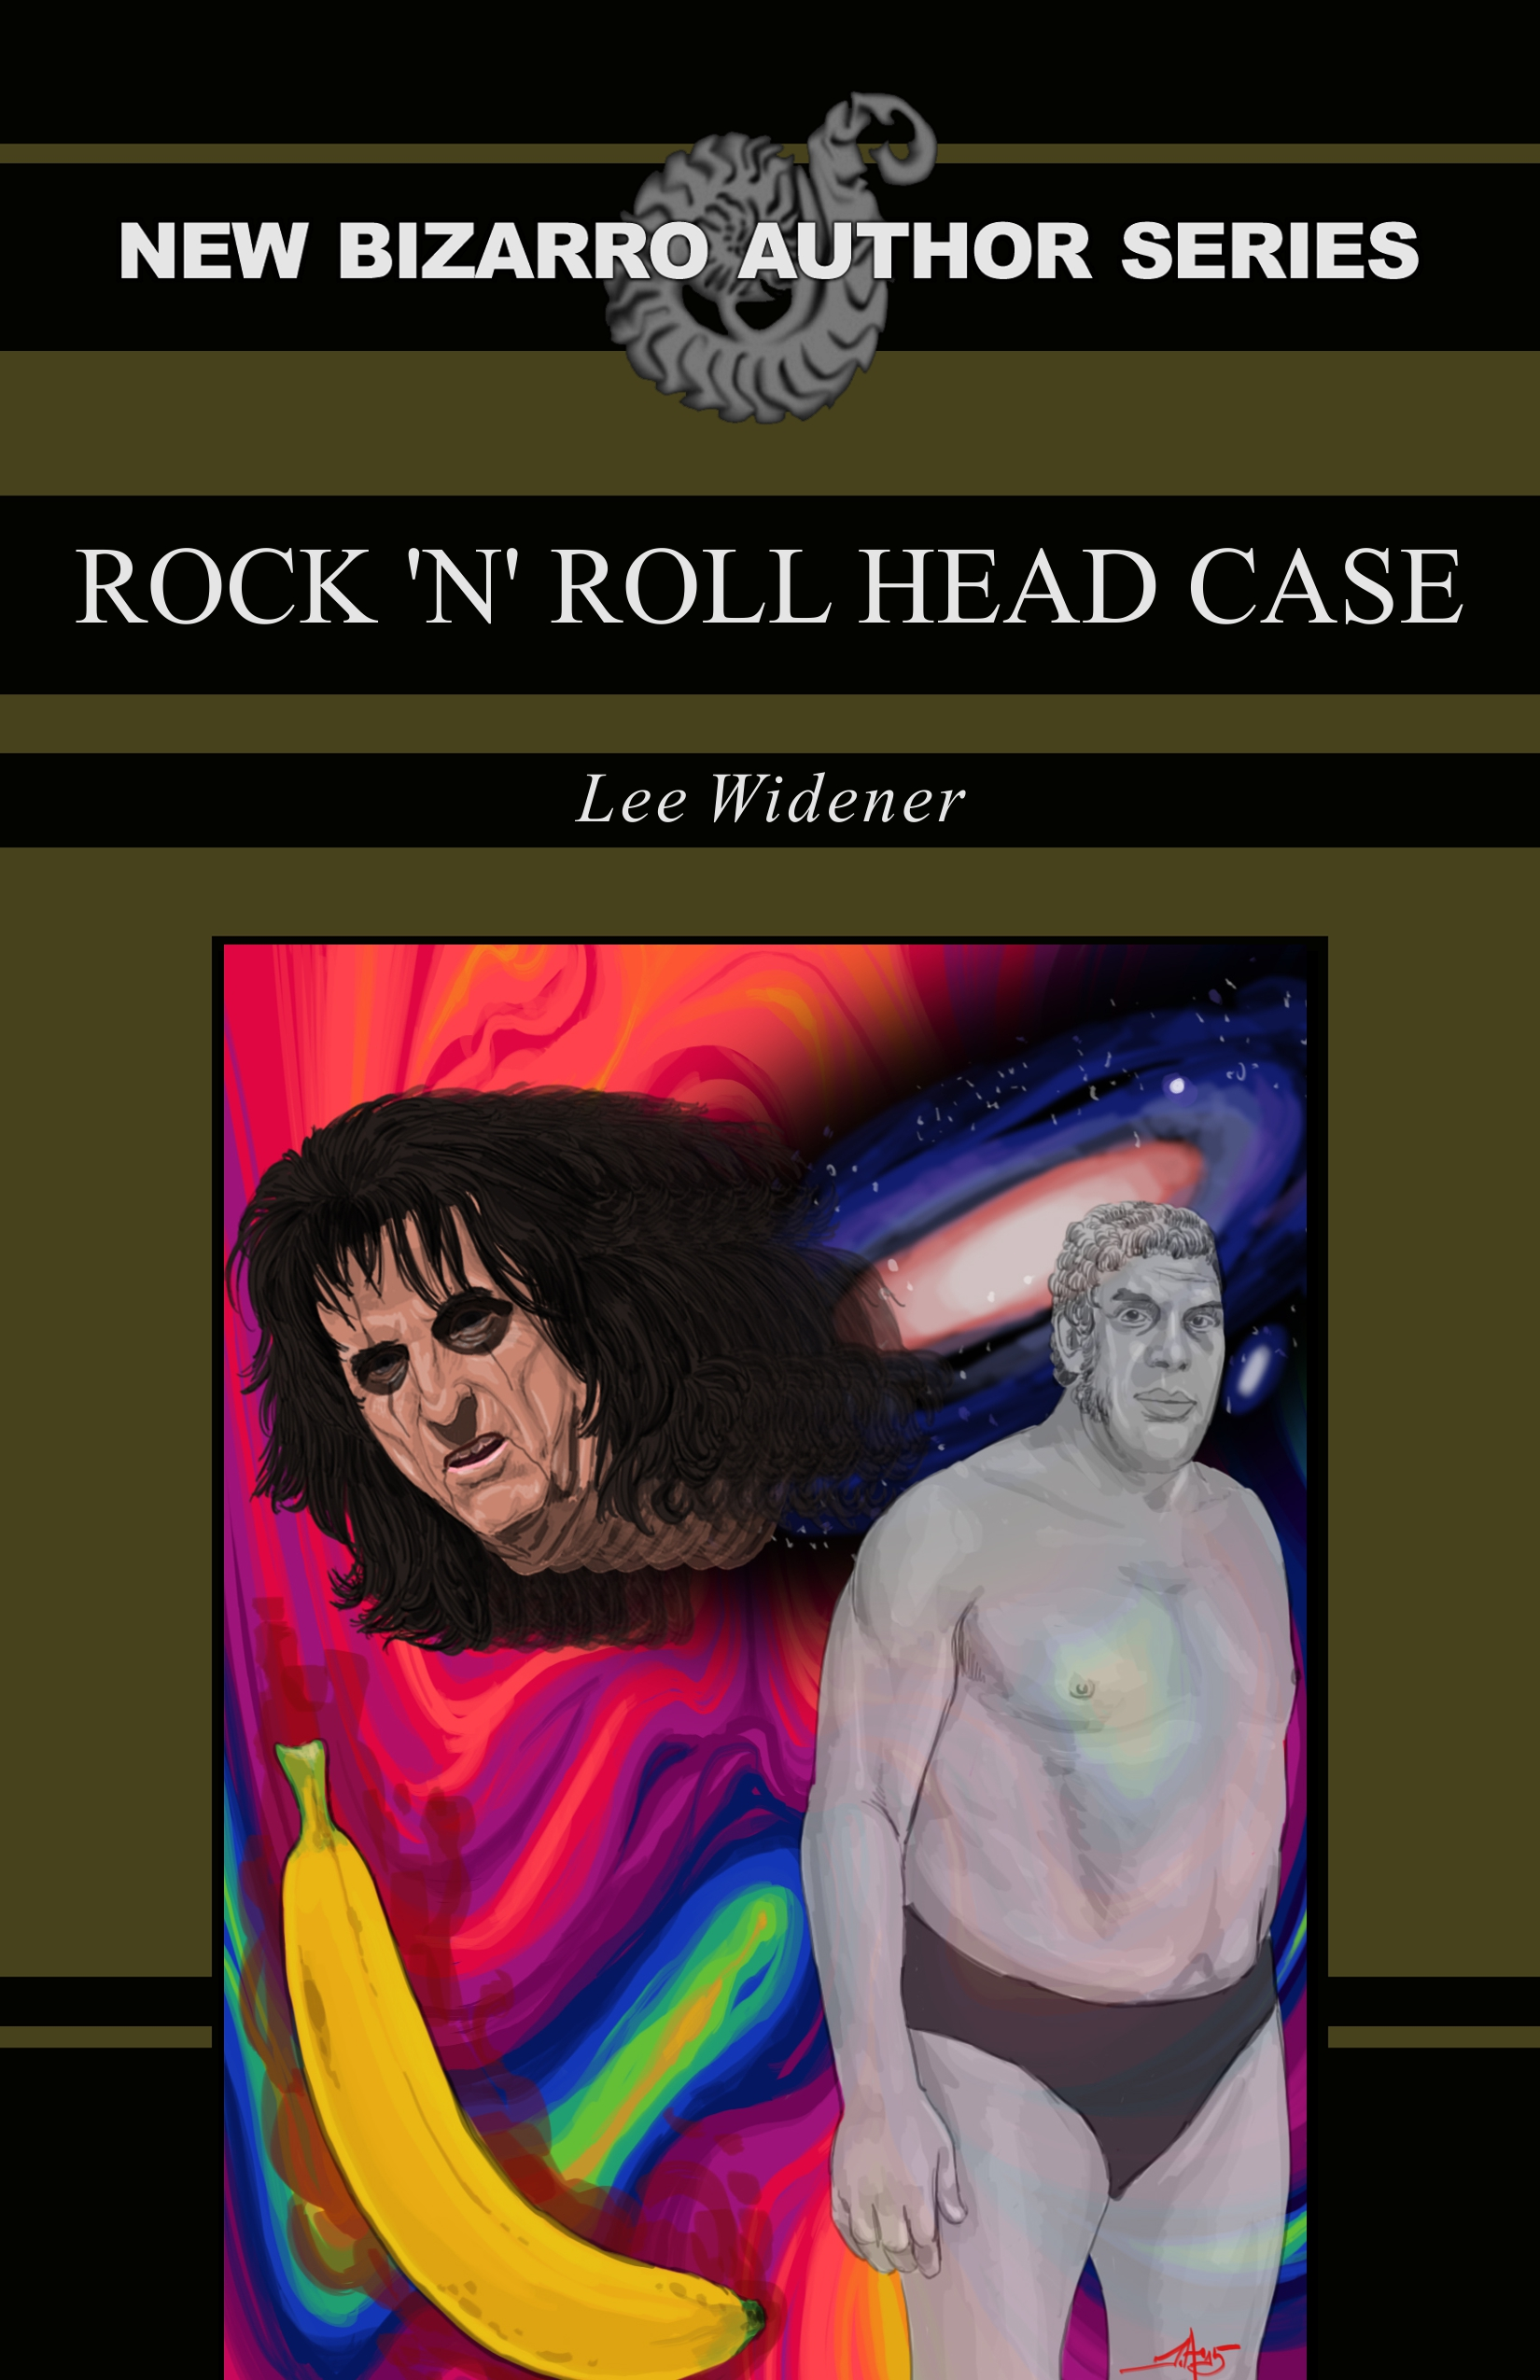 Rock 'N' Roll Headcase by Lee Widener